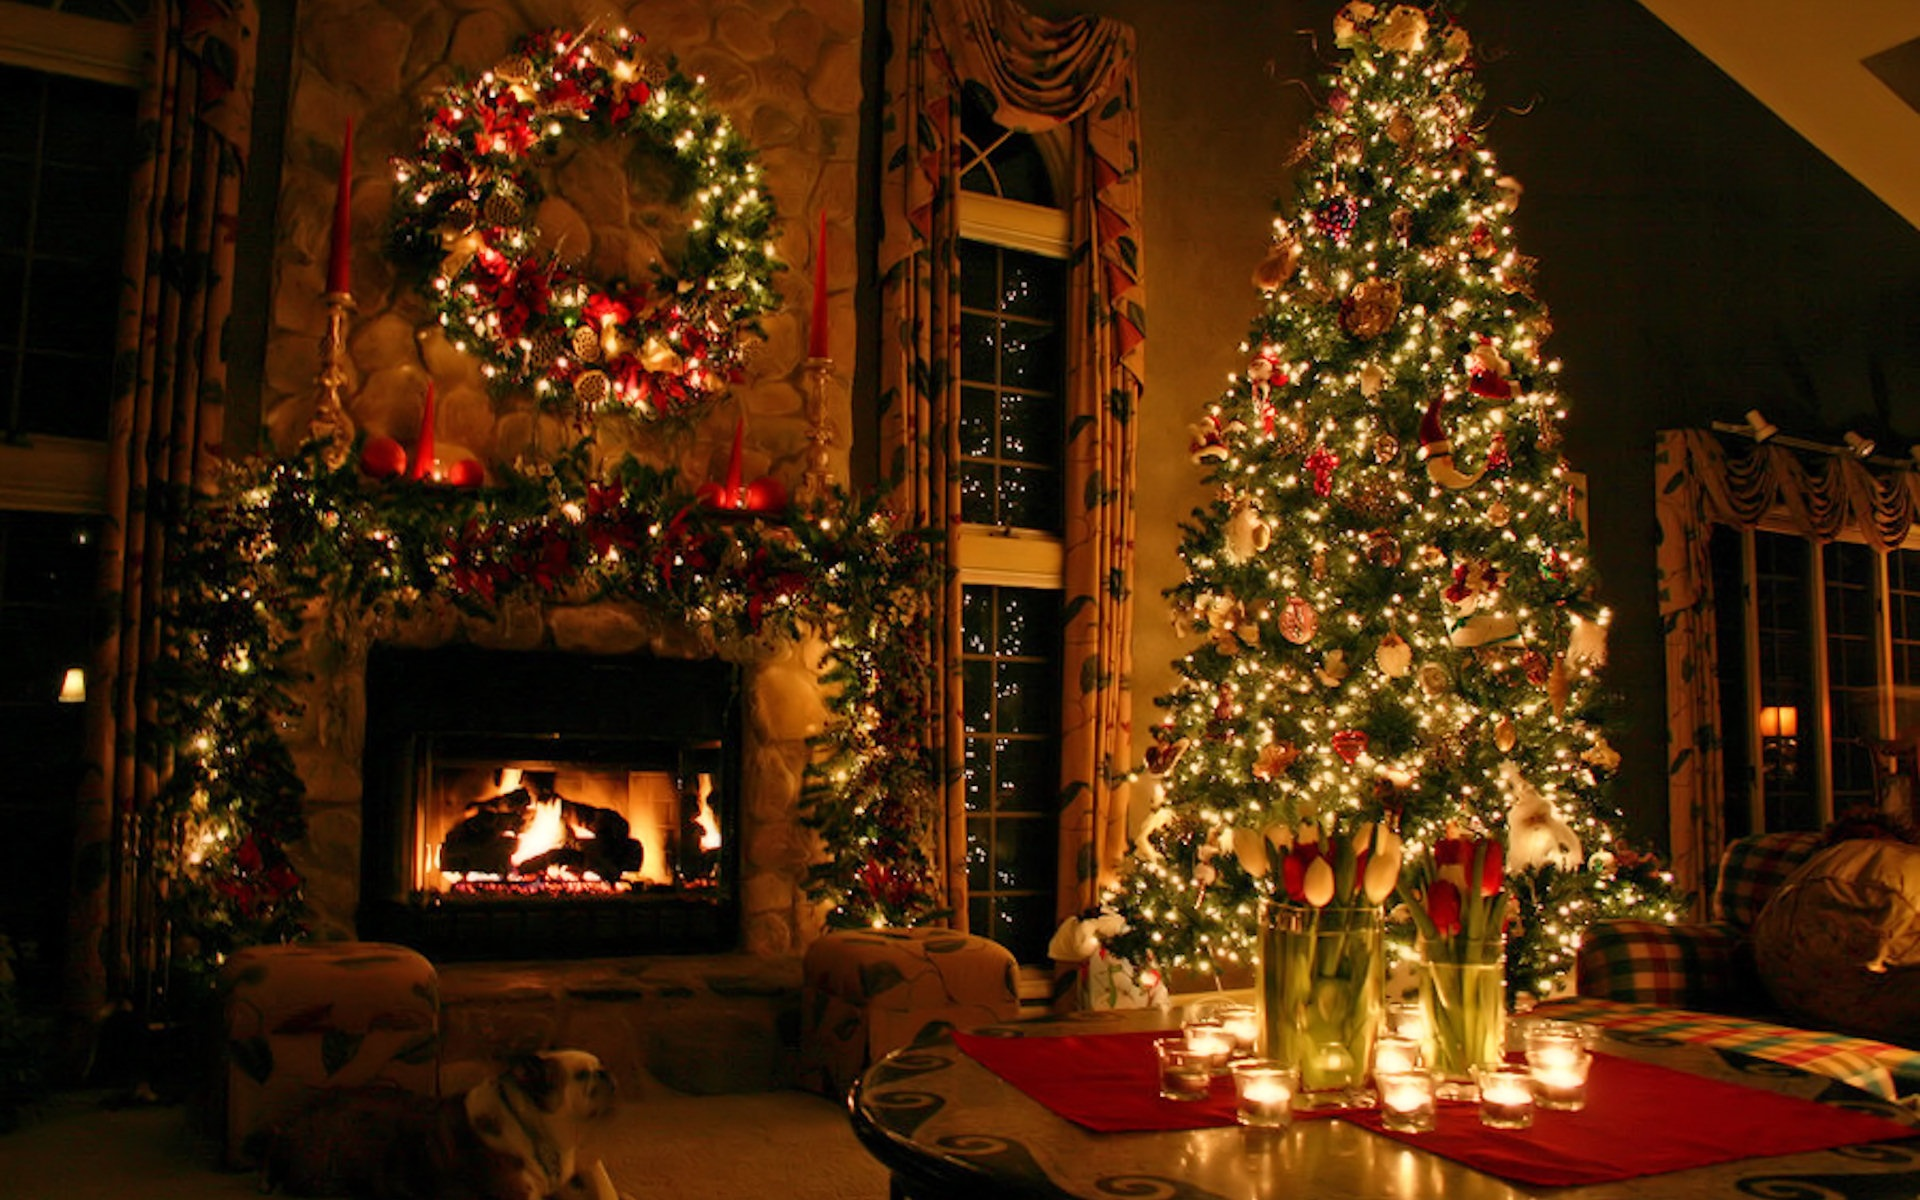 christmas wallpaper 81 1024x640 21 Stunningly Beautiful Christmas 1920x1200